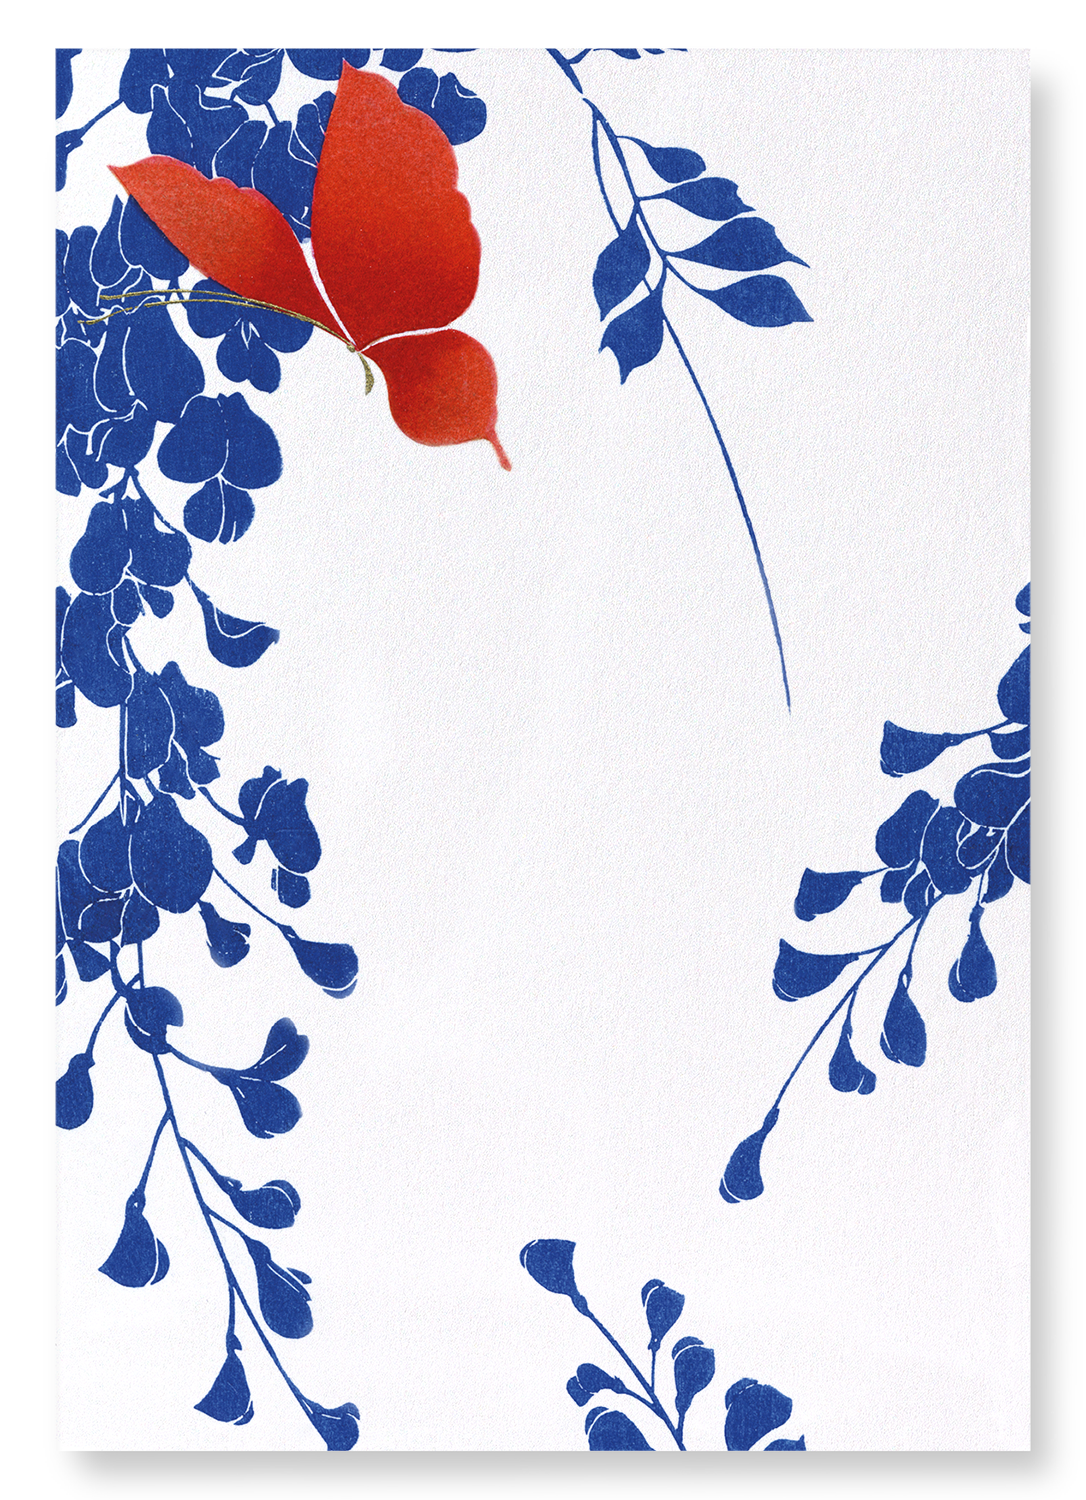 RED BUTTERFLY AND WISTERIA: 2xPrints